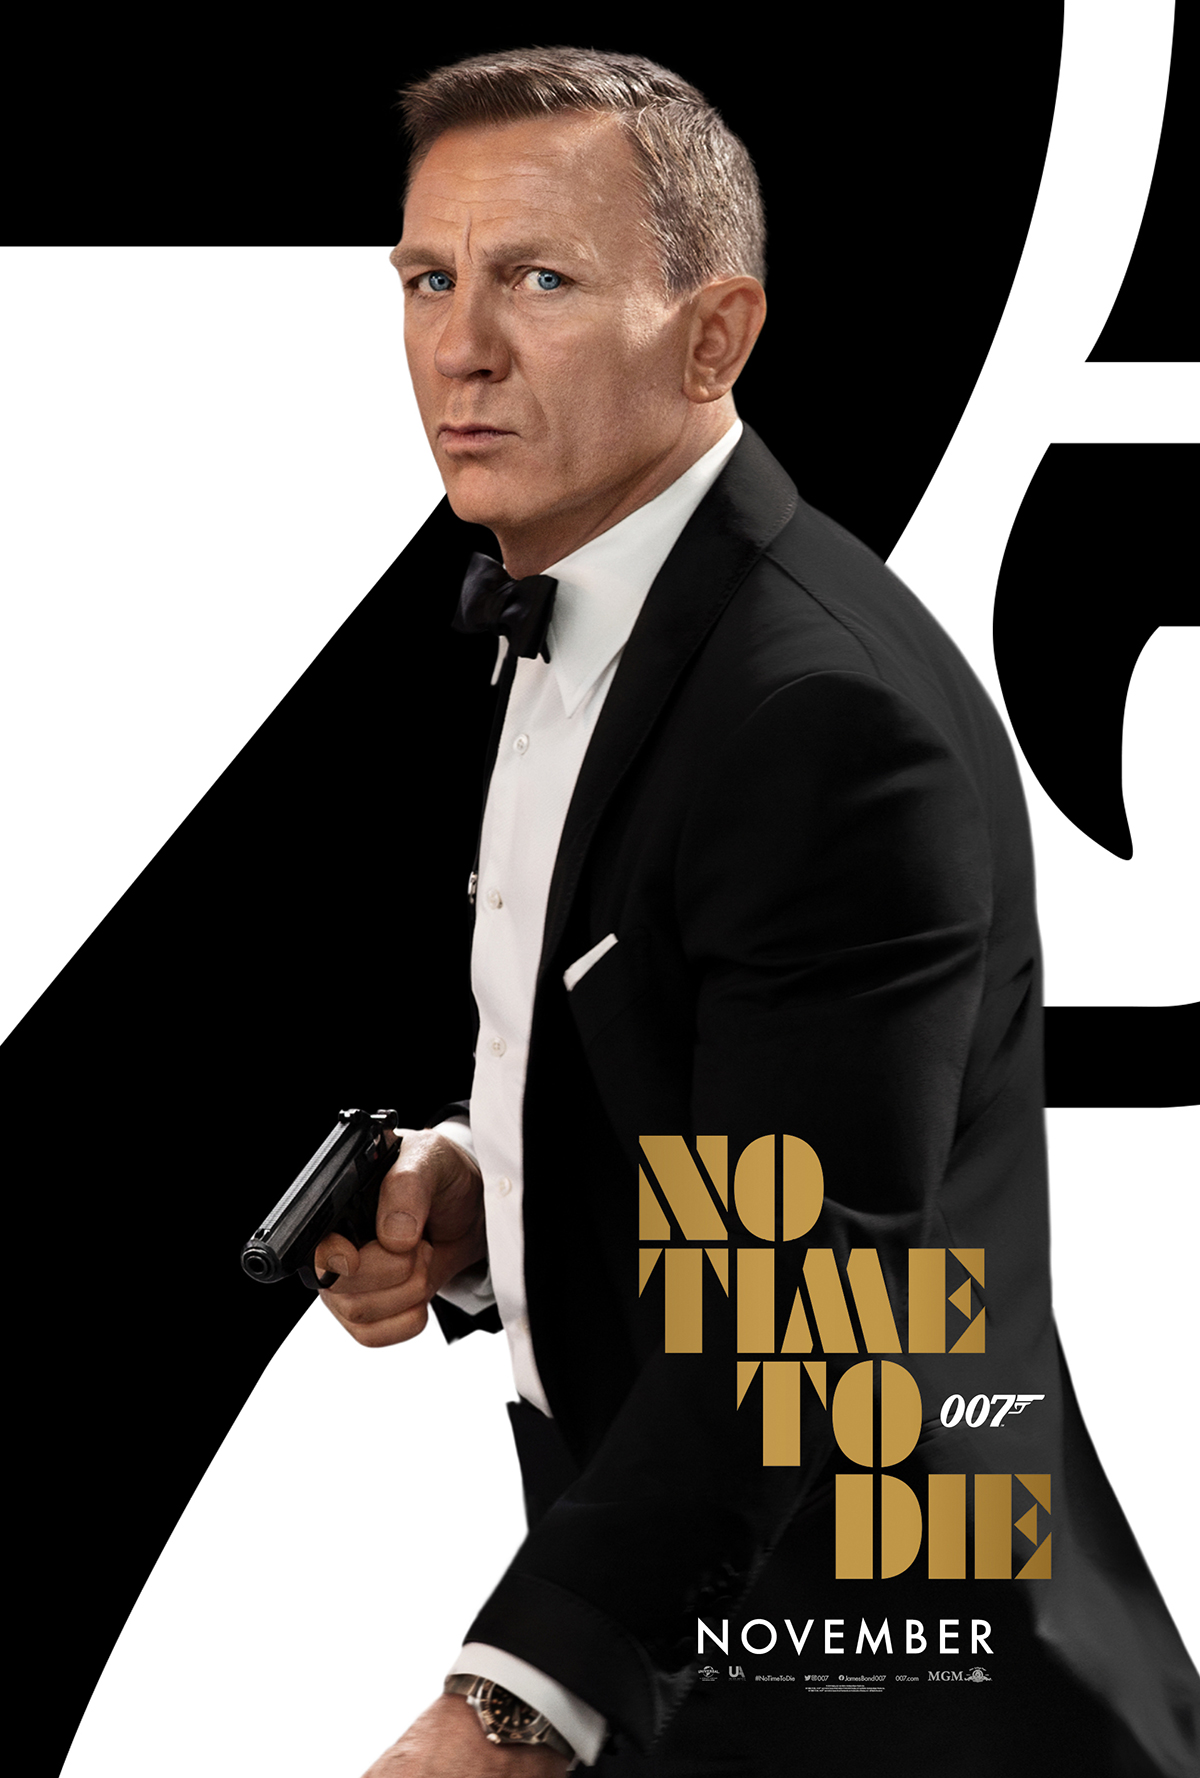 NO TIME TO DIE POSTER (#2 OF 12) - OKAY BHARGAV